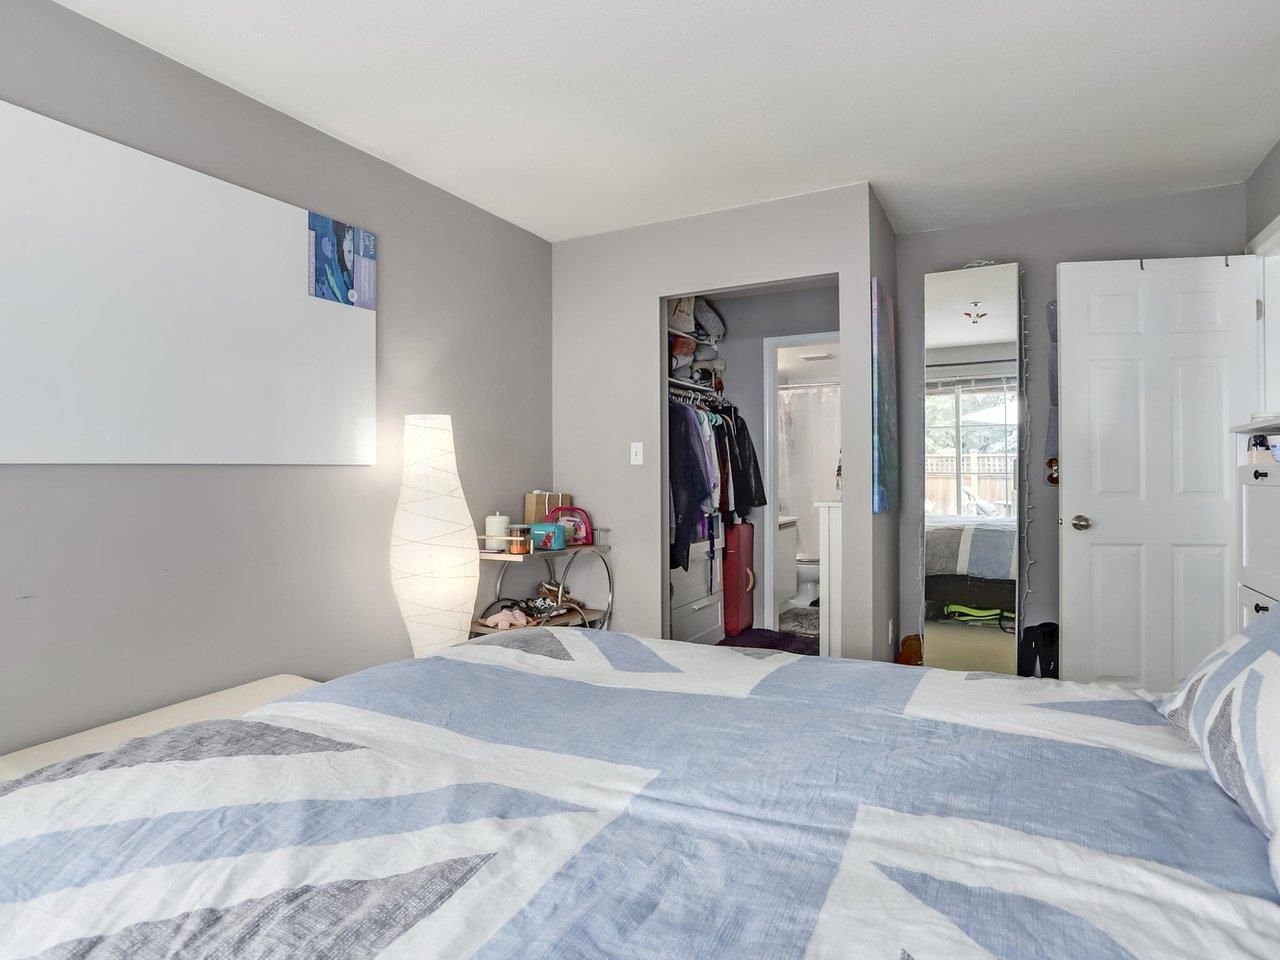 Photo 12: Photos: 107 295 SCHOOLHOUSE Street in Coquitlam: Maillardville Condo for sale : MLS®# R2286753